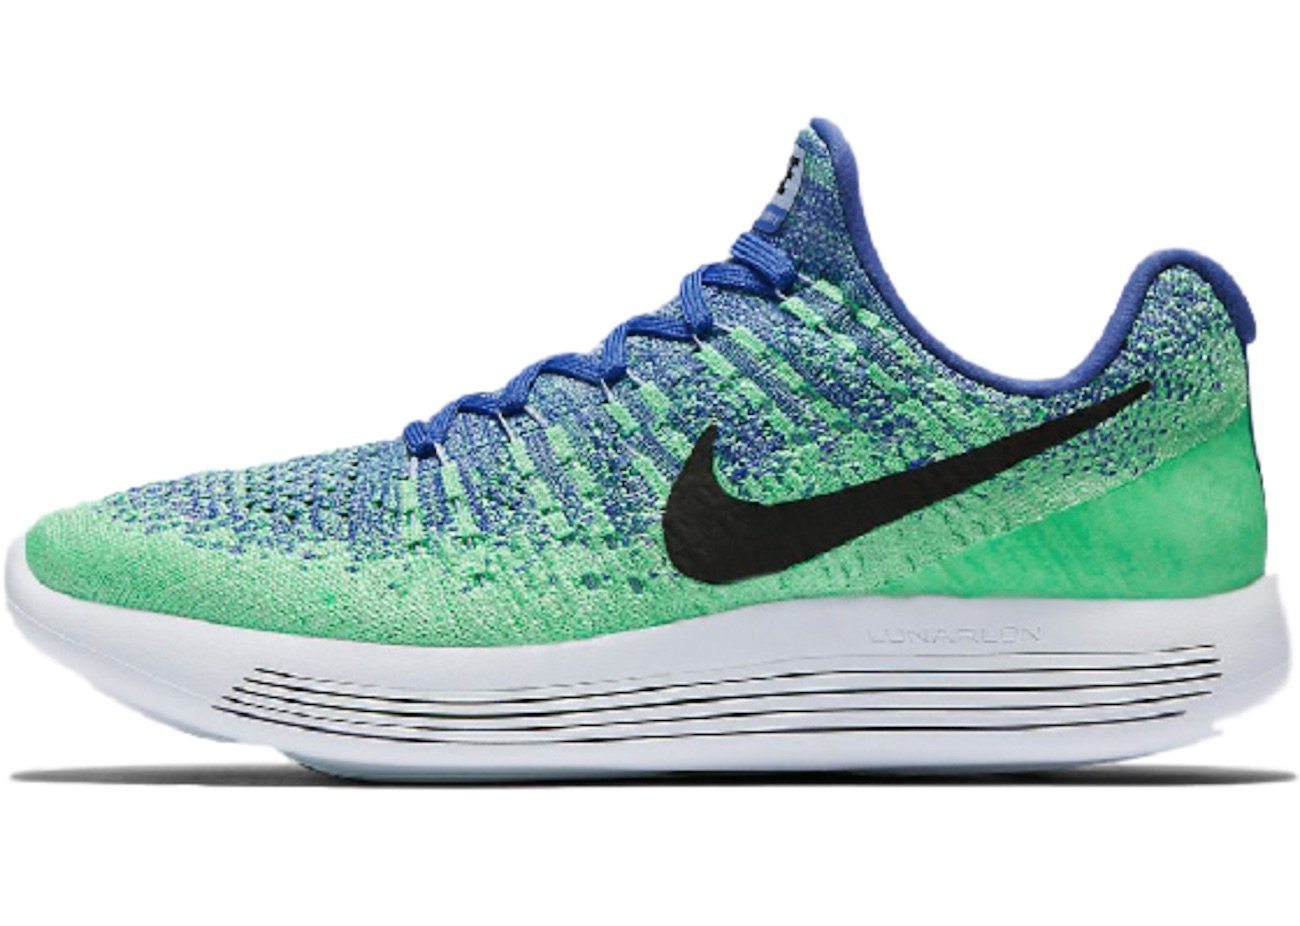 NIKE Women's Lunarepic Low Flyknit 2 Running Shoe B01N808XBY 8 B(M) US|Medium Blue/Black-aluminum-electro Green